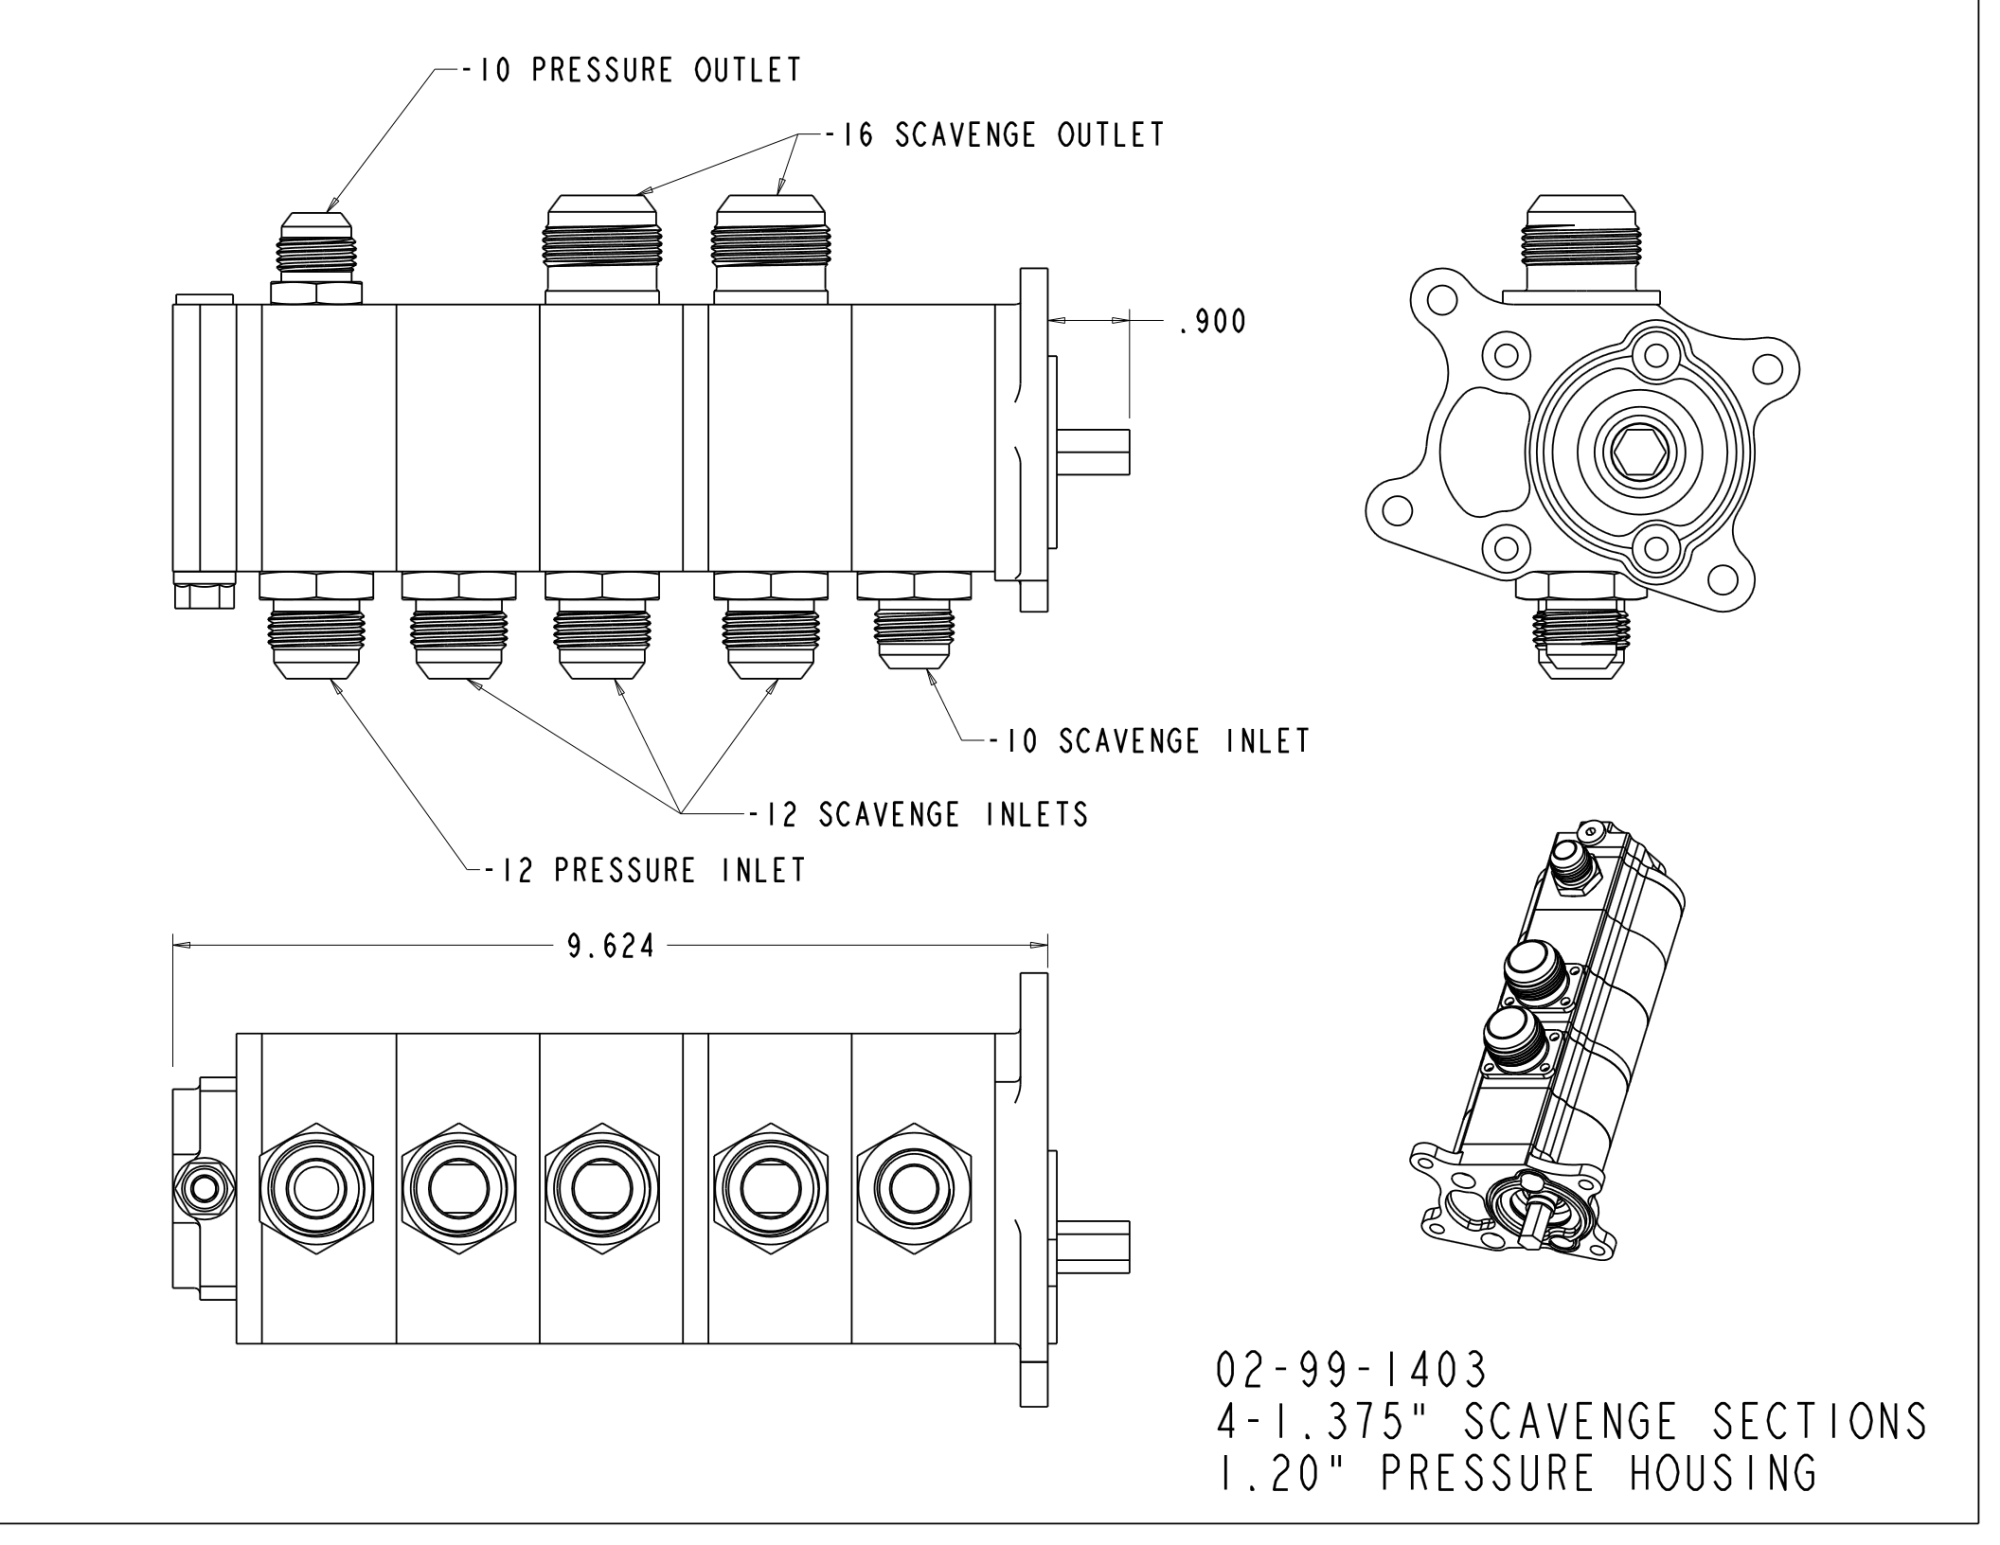 hight resolution of 4g63 engine block diagram html imageresizertool com 4g63t engine diagram 4g63t vacuum diagram